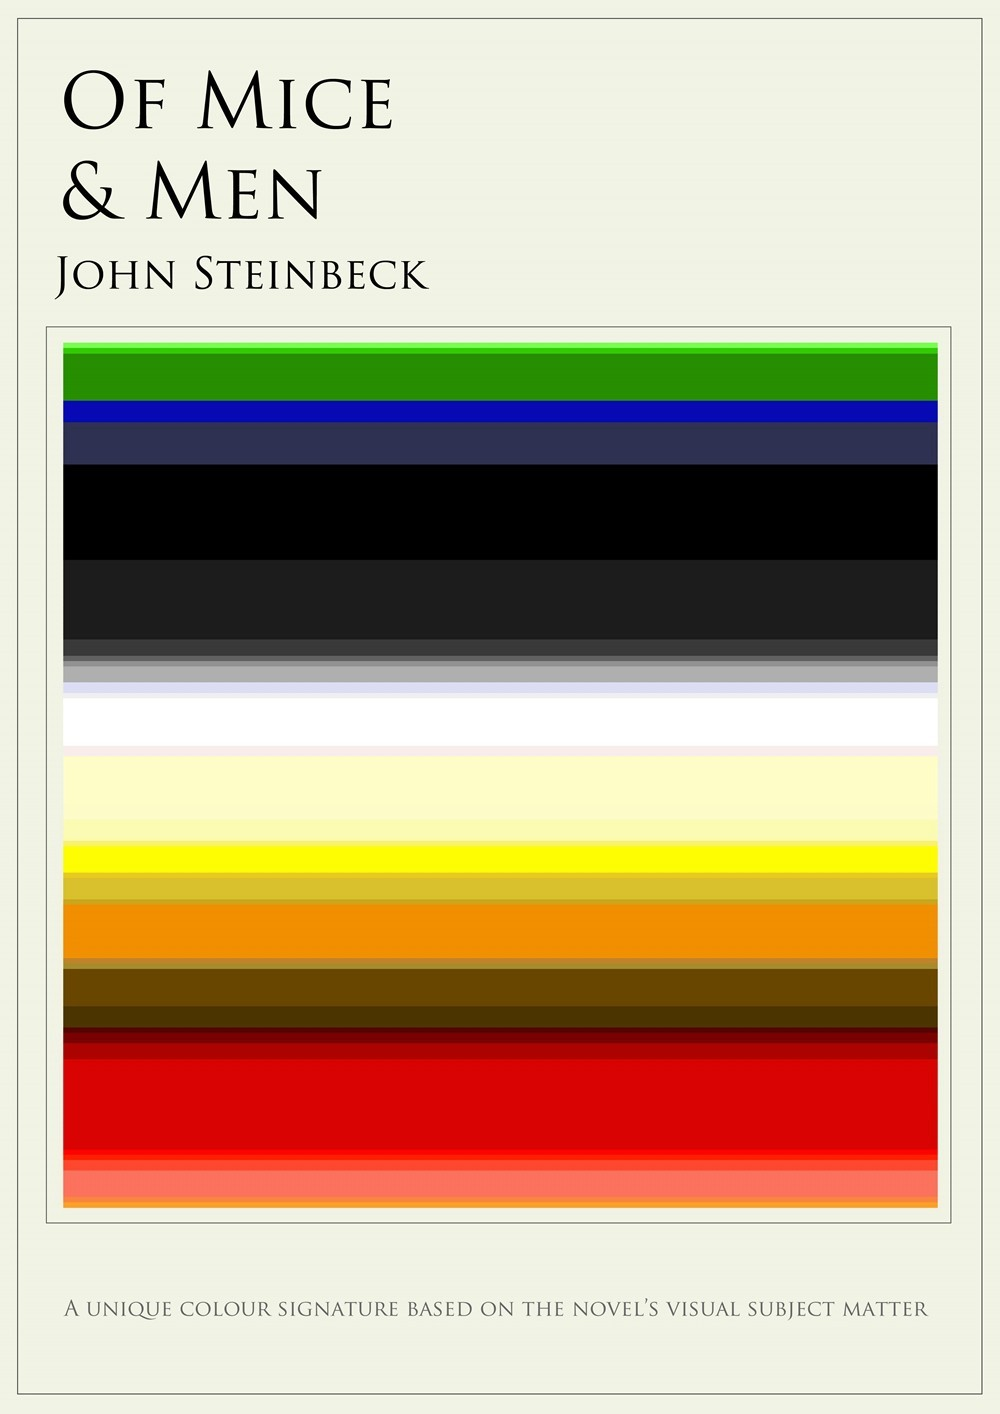 Clever Posters Chart the Colors in Famous Novels  What colors are the insides of your favorite novels? Well, sure, the off-white of a book page — but what about the worlds they create? In artist Jaz Parkinson's color charts project, he has created graphic signatures of novels' visual content, building mini rainbows that correspond to classic works.